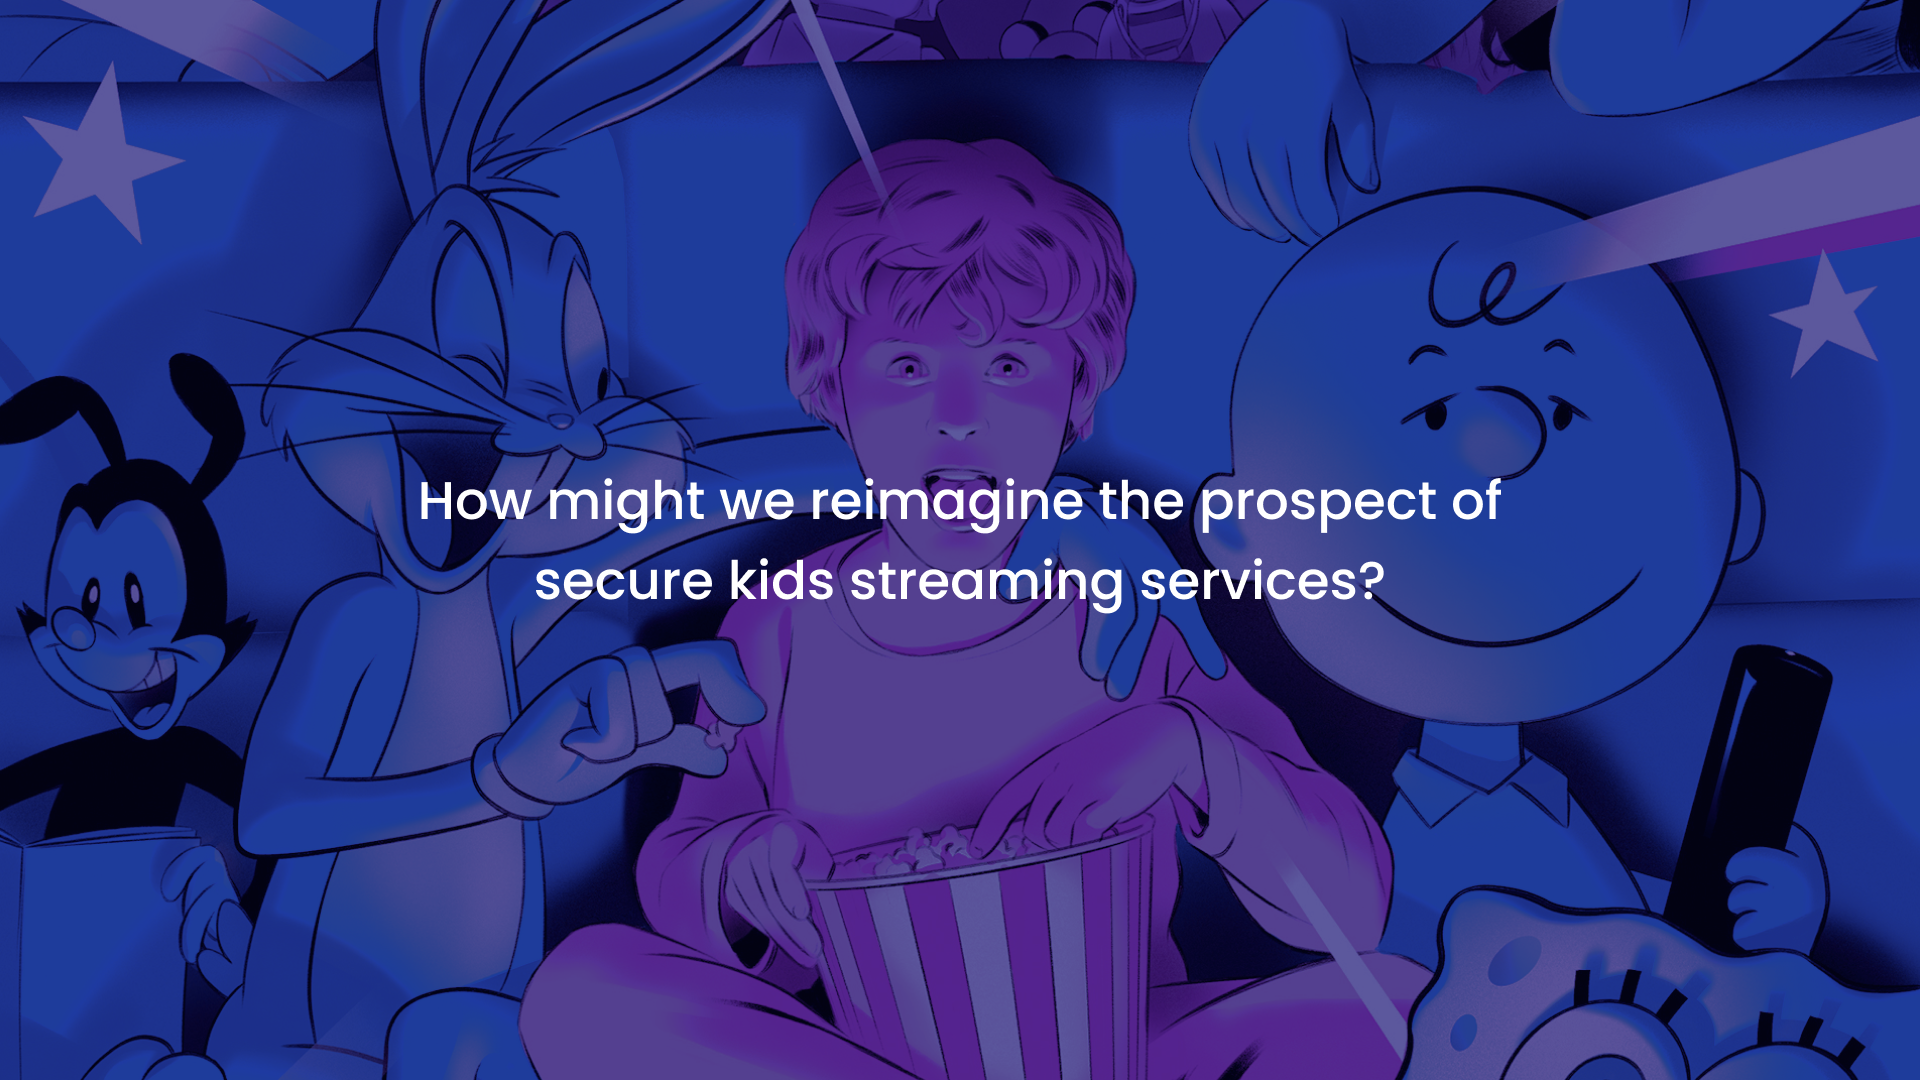 A blue and purple gradient image with question—How might we reimagine the prospect of secure kids streaming services?